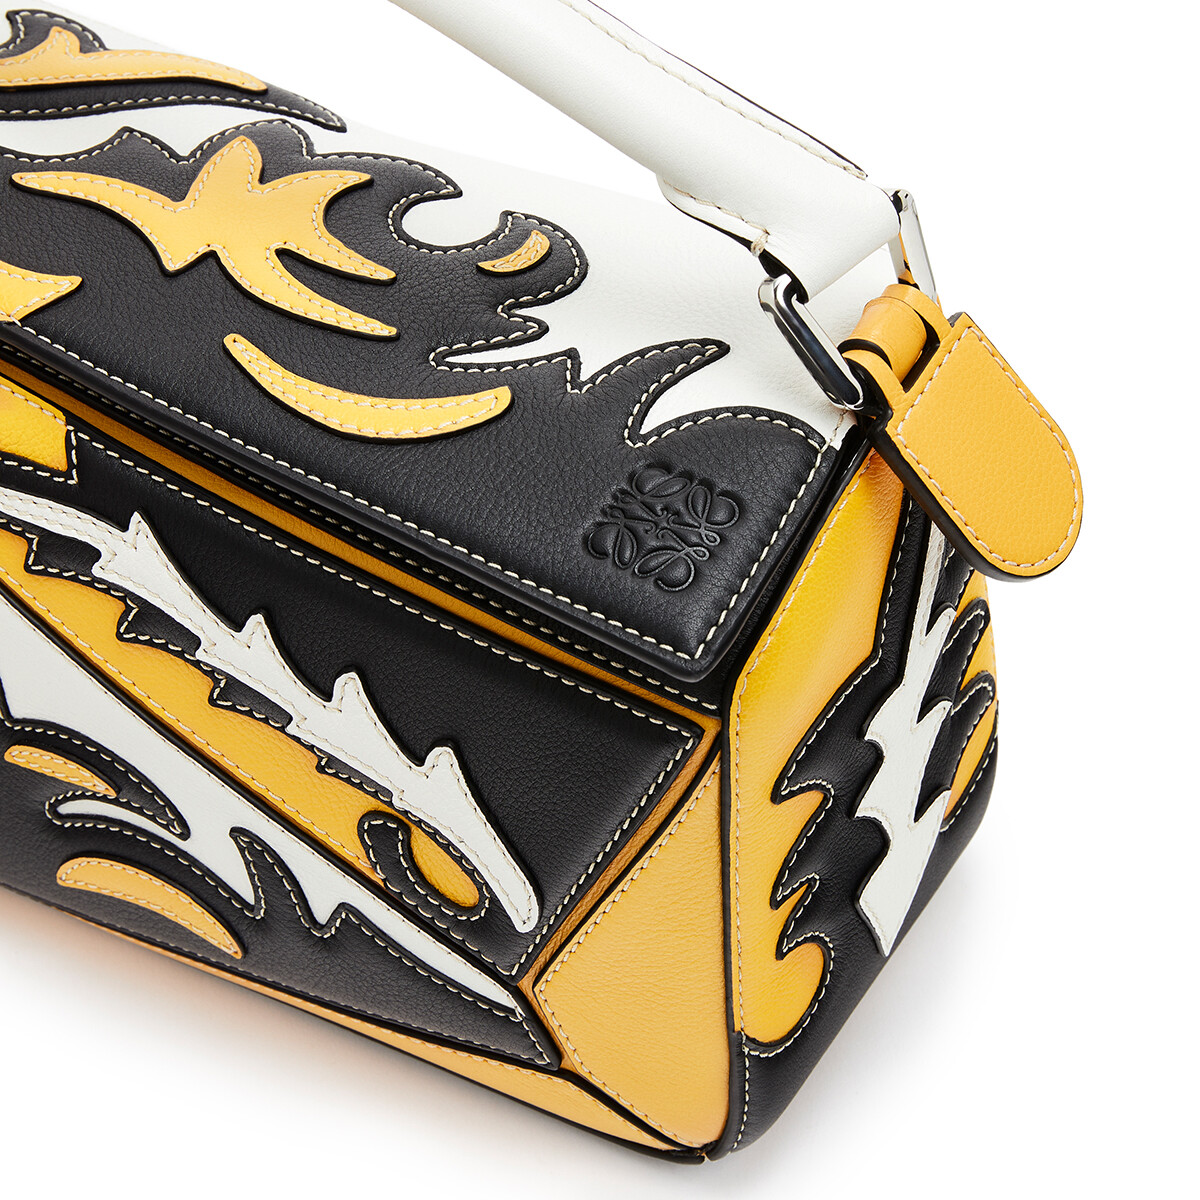 LOEWE Puzzle Cowboy Small Bag Black/Yellow Mango front